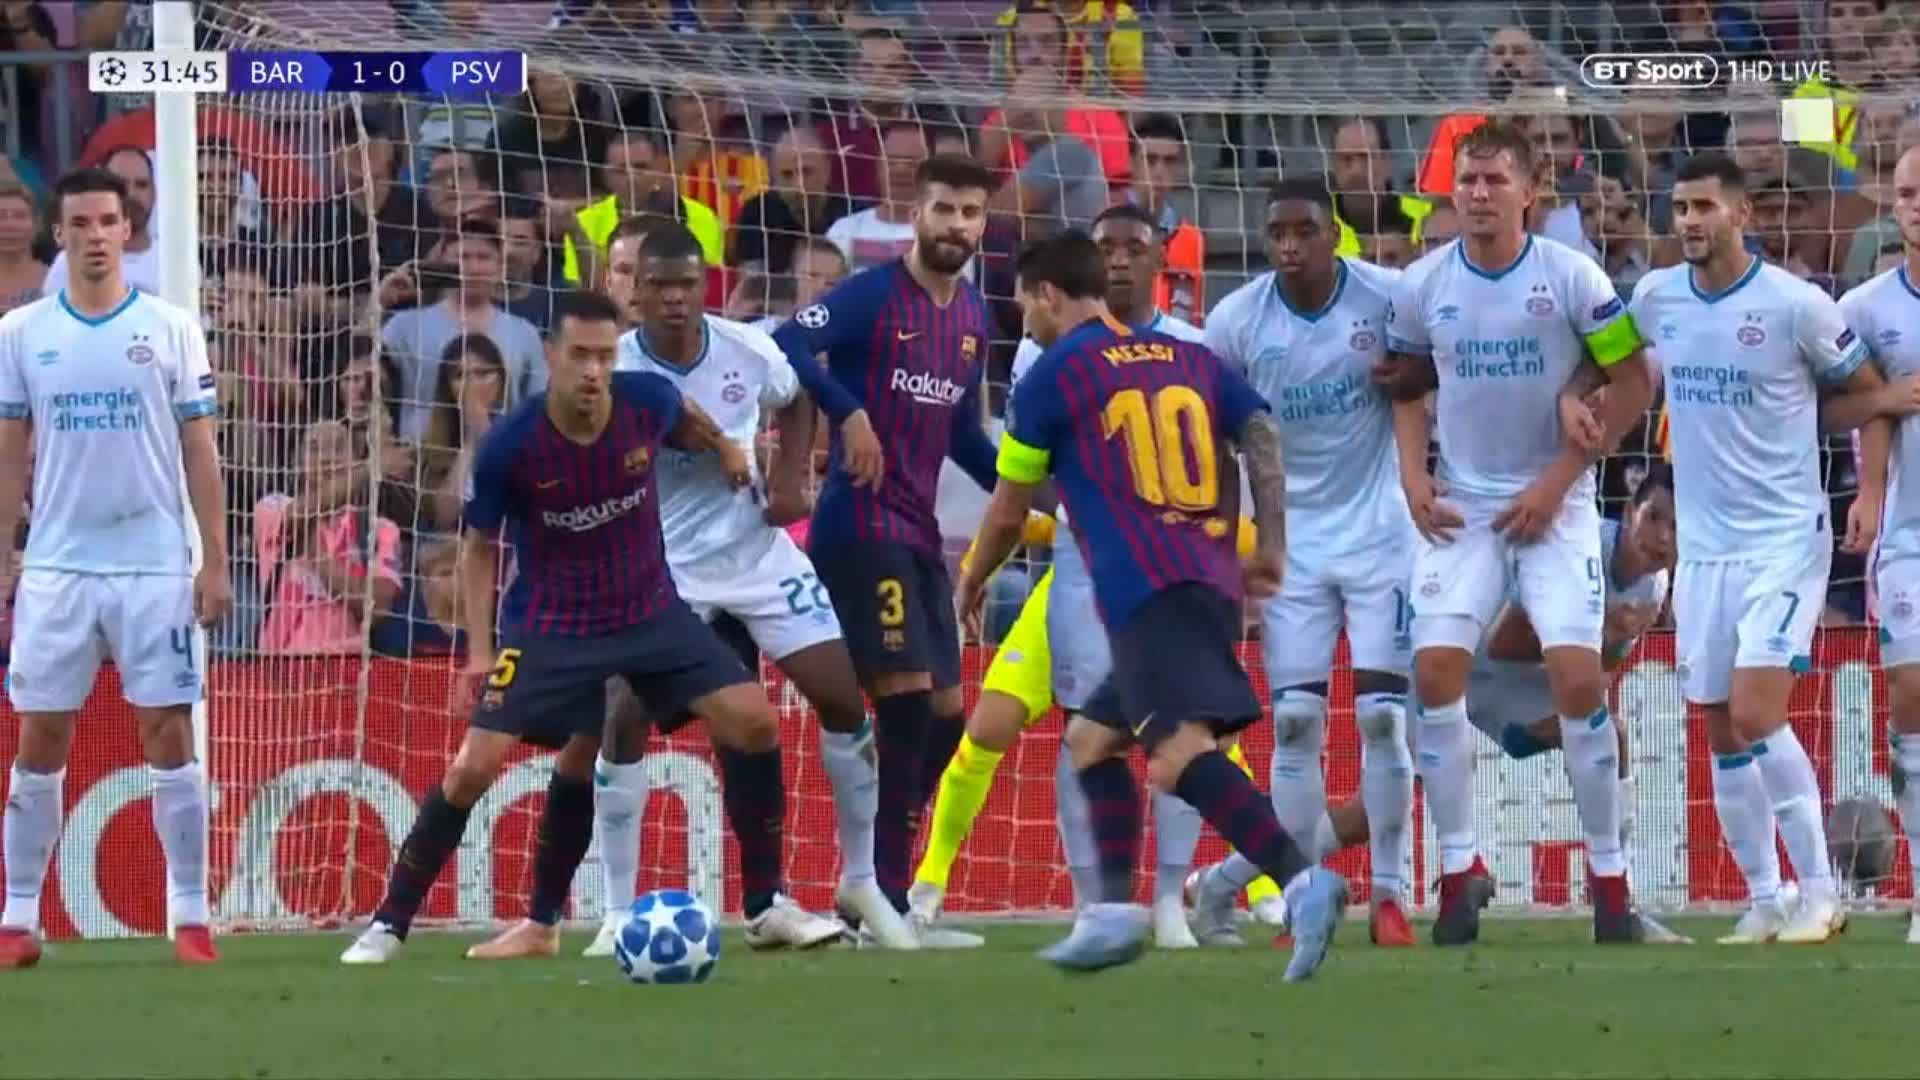 Lionel Messi. Free-kick. 25 yards out...  Top corner ��  We really are running out of words to describe this man! https://t.co/YDkIZ6XiL5